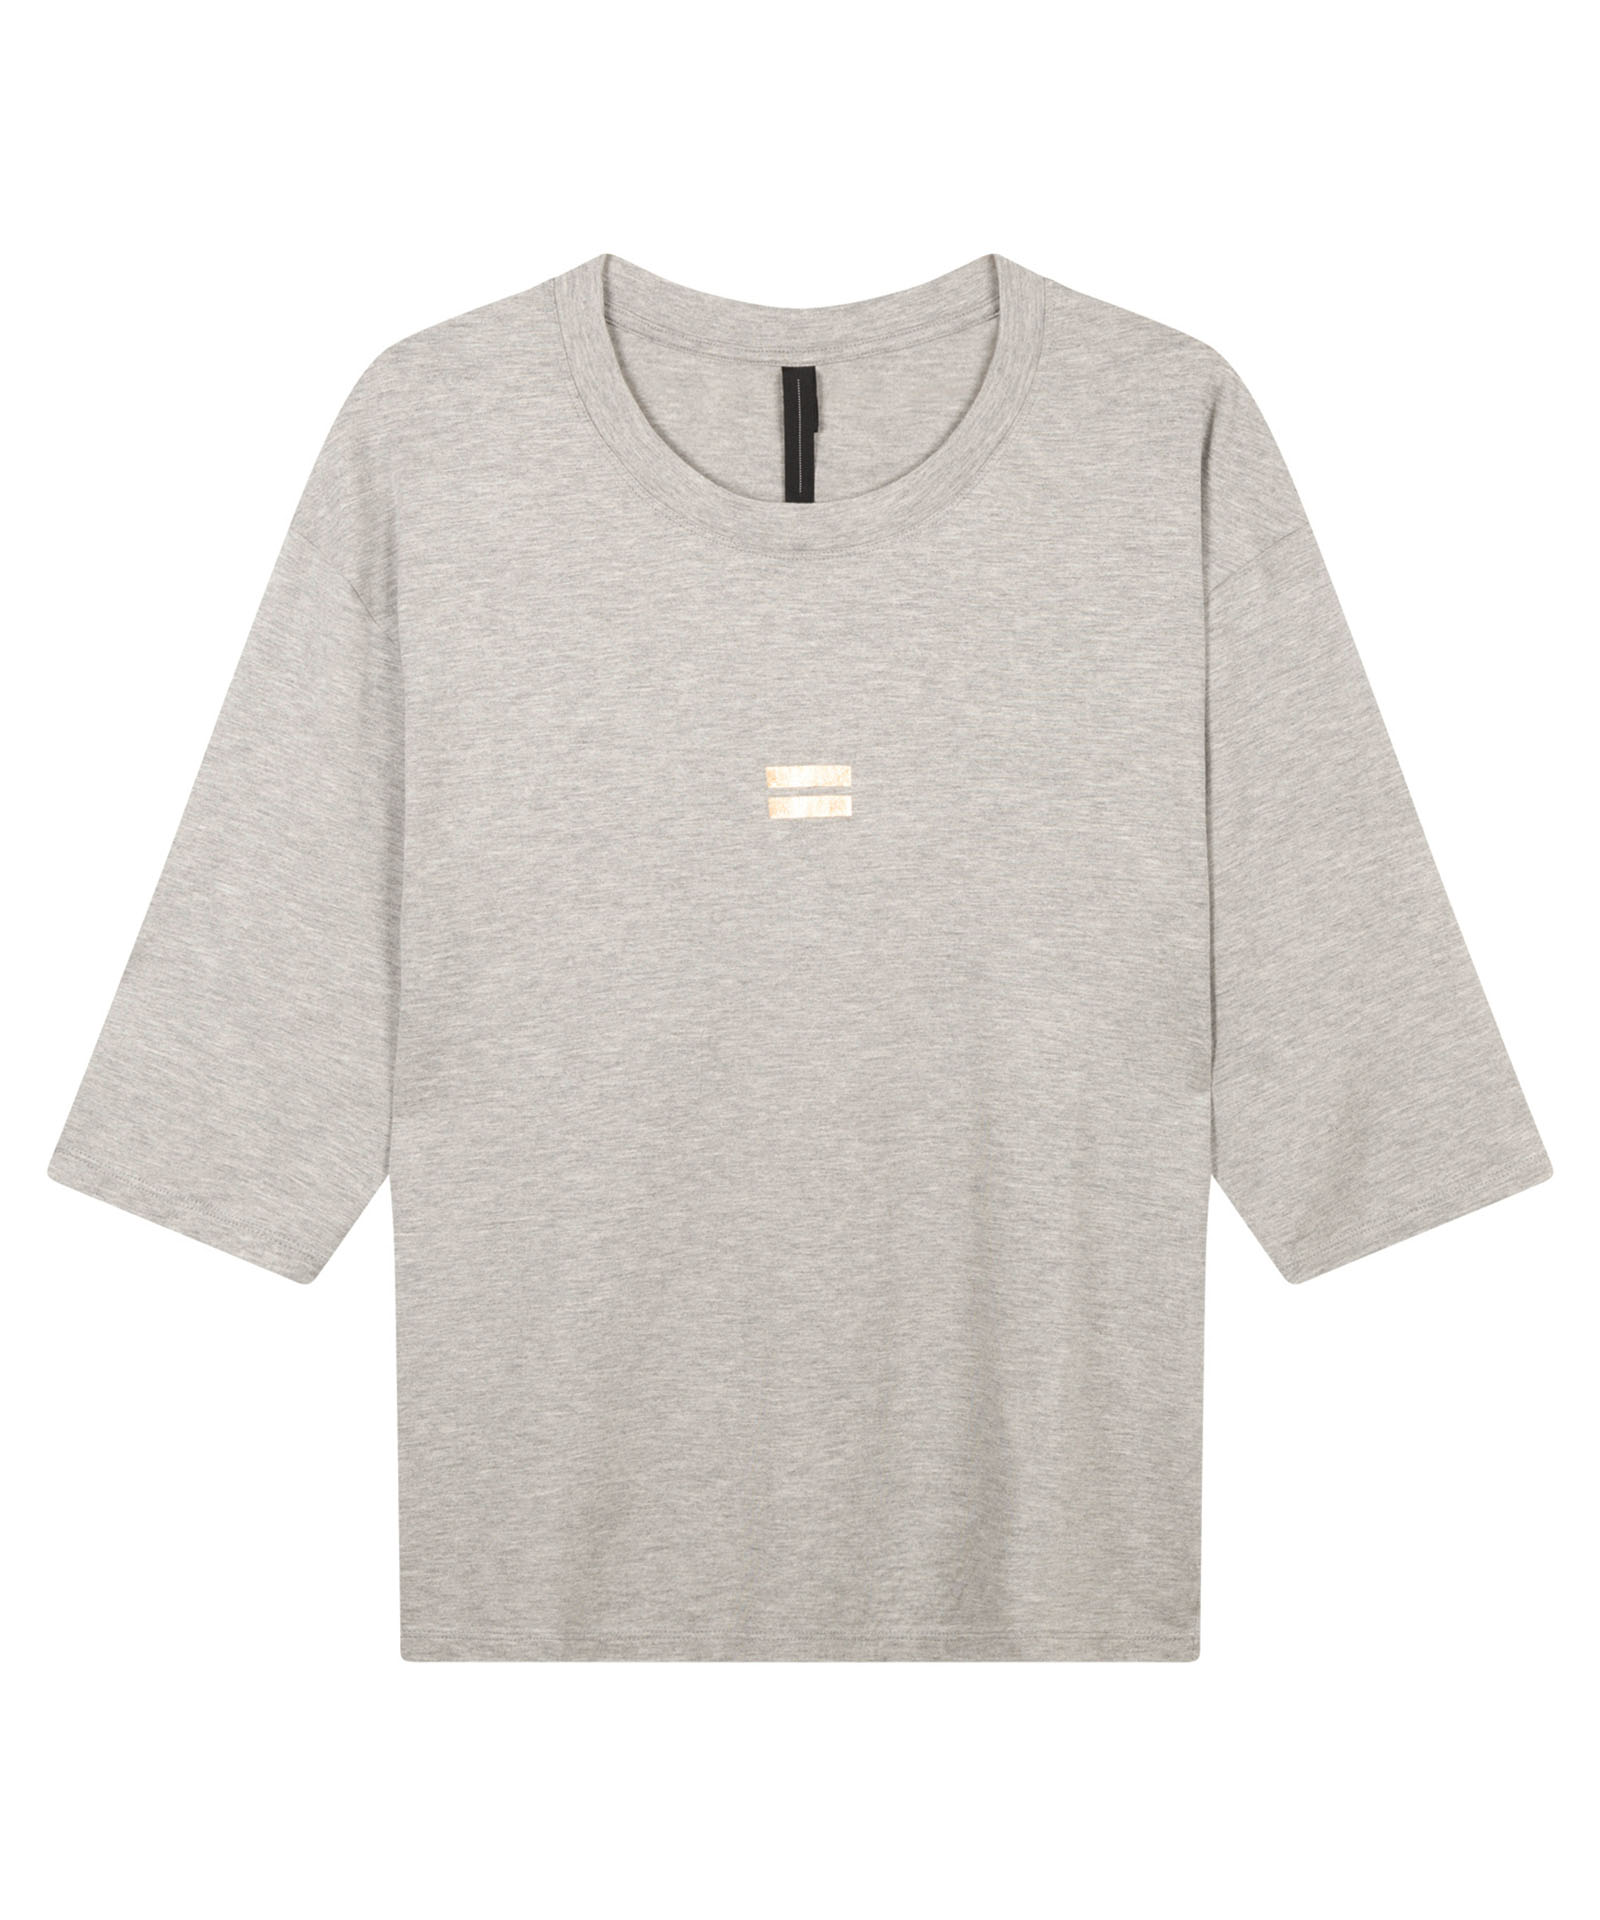 10Days light grey melee t-shirts